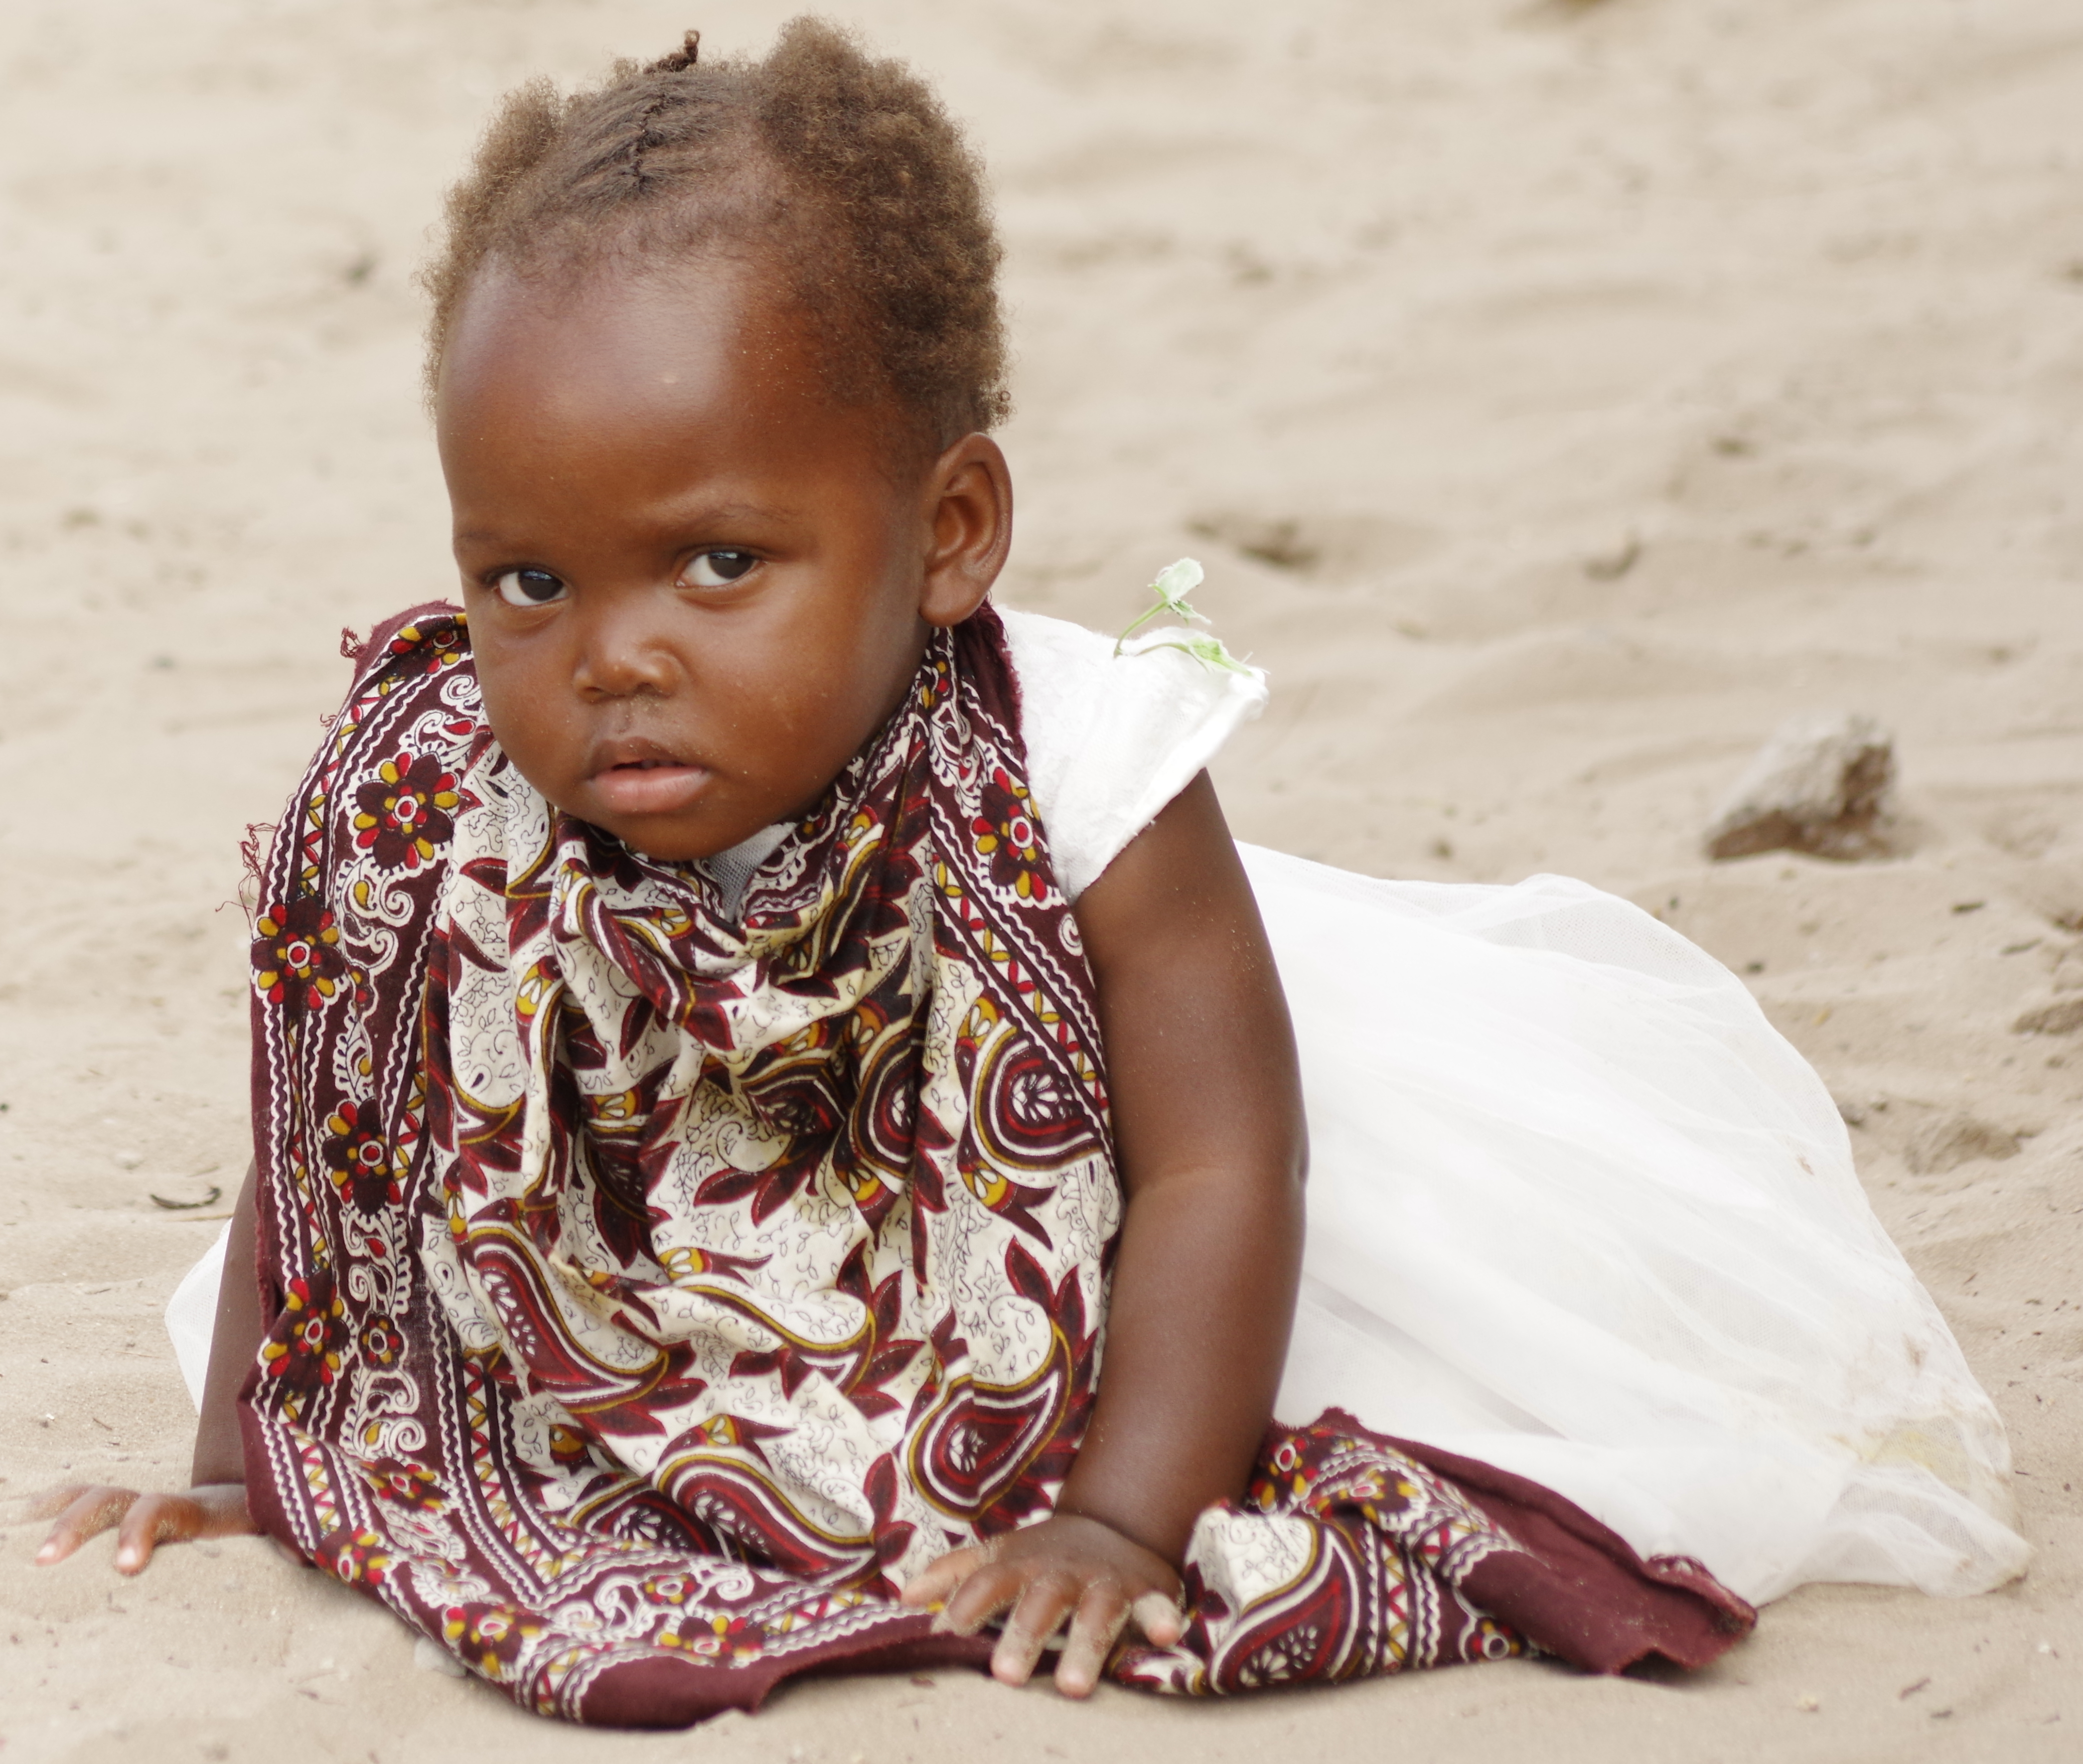 Small girl sitting on sandy ground and looking at the camera.